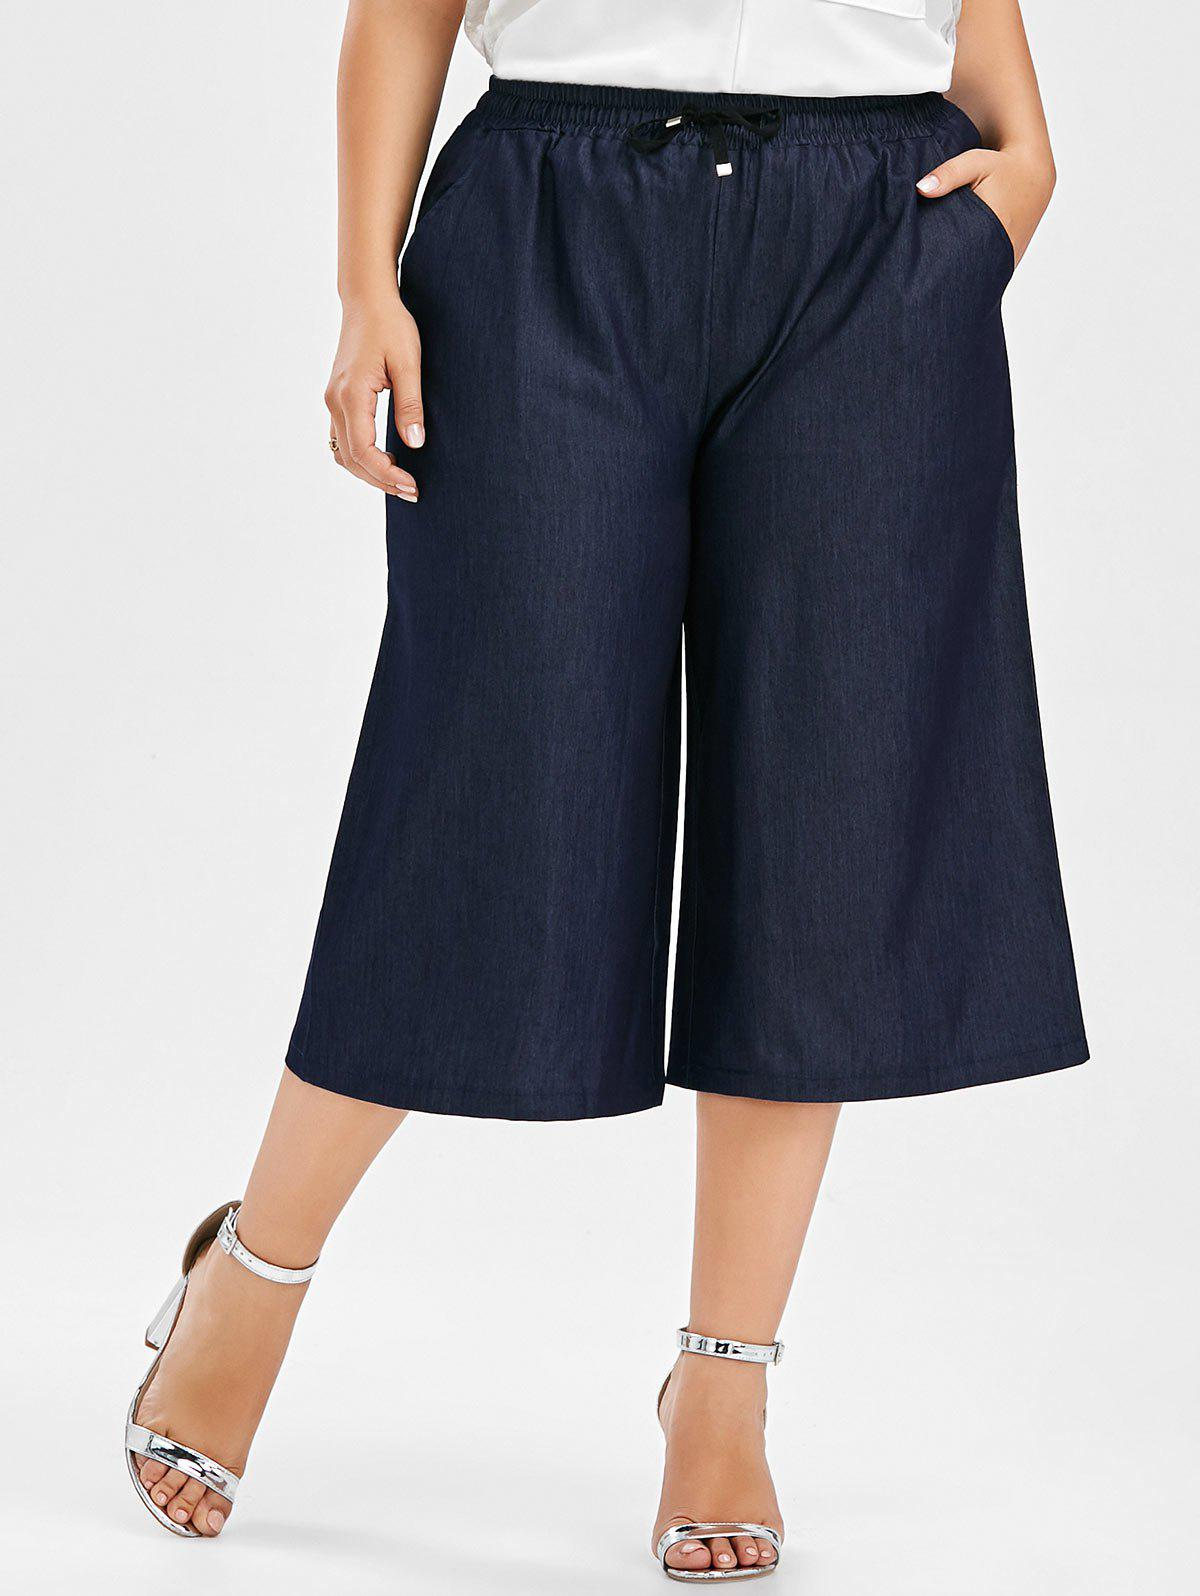 Plus Size Drawstring Wide Leg Crop PantsWOMEN<br><br>Size: 5XL; Color: DEEP BLUE; Style: Casual; Length: Capri; Material: Polyester; Fit Type: Loose; Waist Type: Mid; Closure Type: Drawstring; Pattern Type: Solid; Pant Style: Wide Leg Pants; With Belt: No; Weight: 0.3500kg; Package Contents: 1 x Pants;